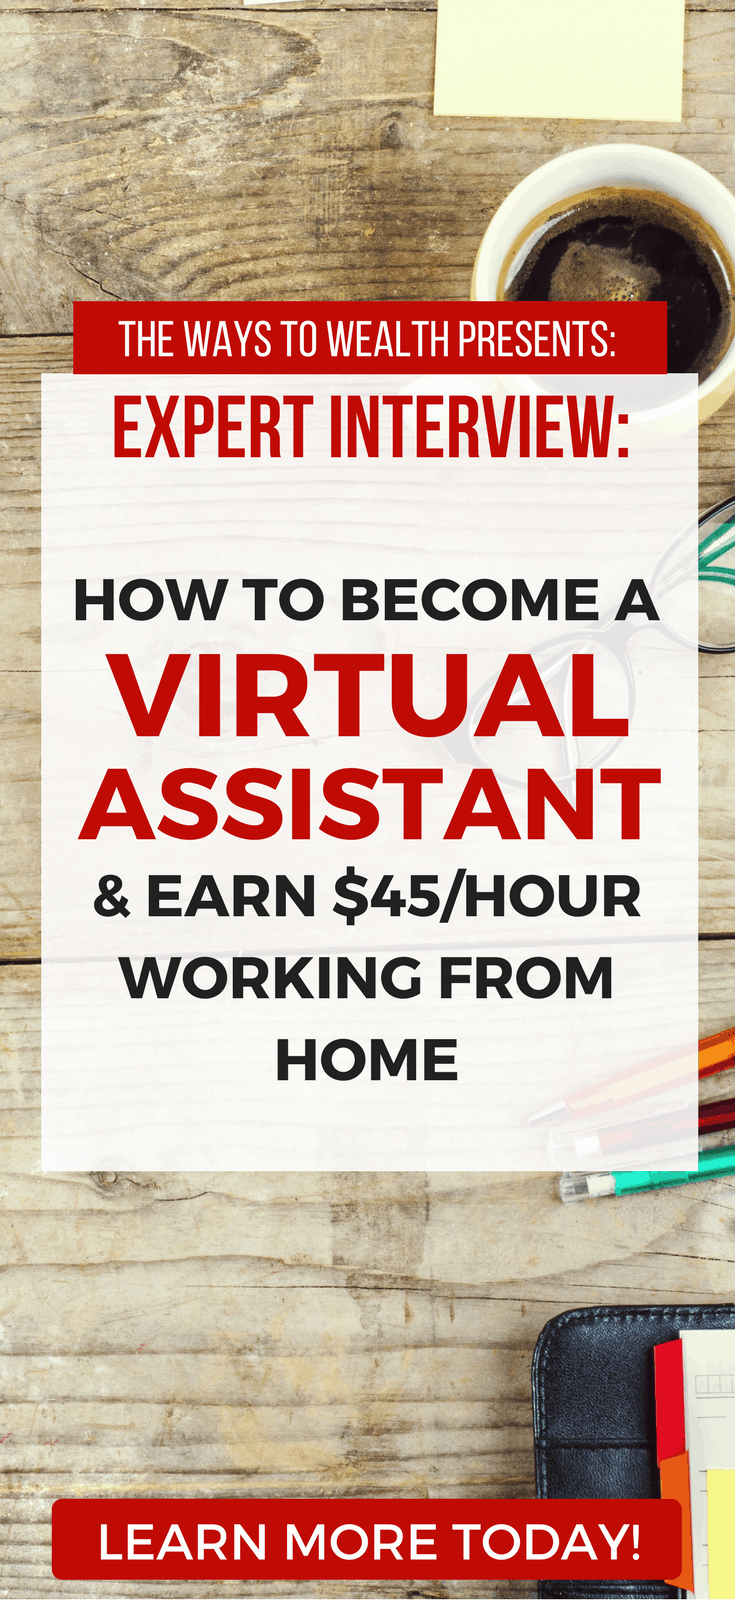 What skills do you need to become a virtual assistant? Where can you find qualified virtual assistant training? Learn this and more in an interview with virtual assistant expert Gina Horkey. how to become a virtual assistant | successful freelance writer | get started freelance writing | freelancing ideas #thewaystowealth #freelancing #freelance #makemoneyonline